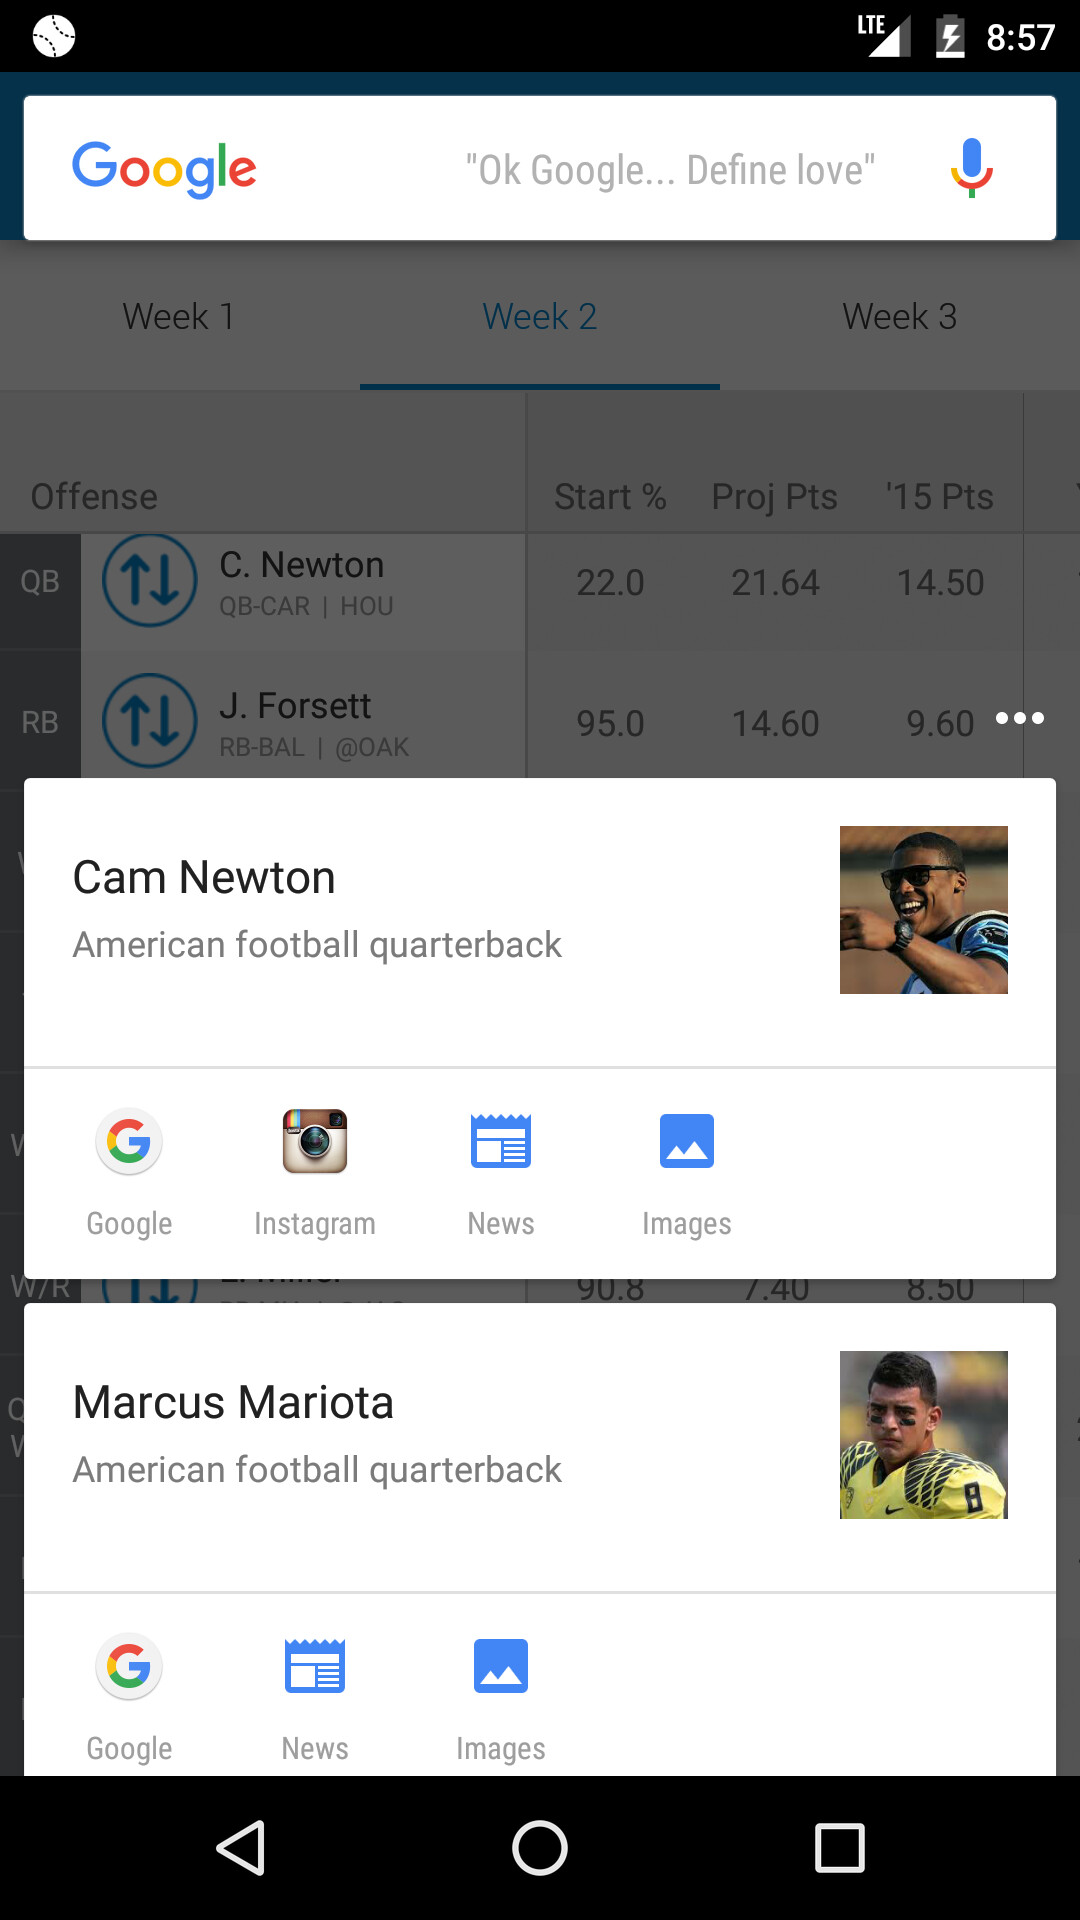 Google Now on Tap is available in the latest Google app ...